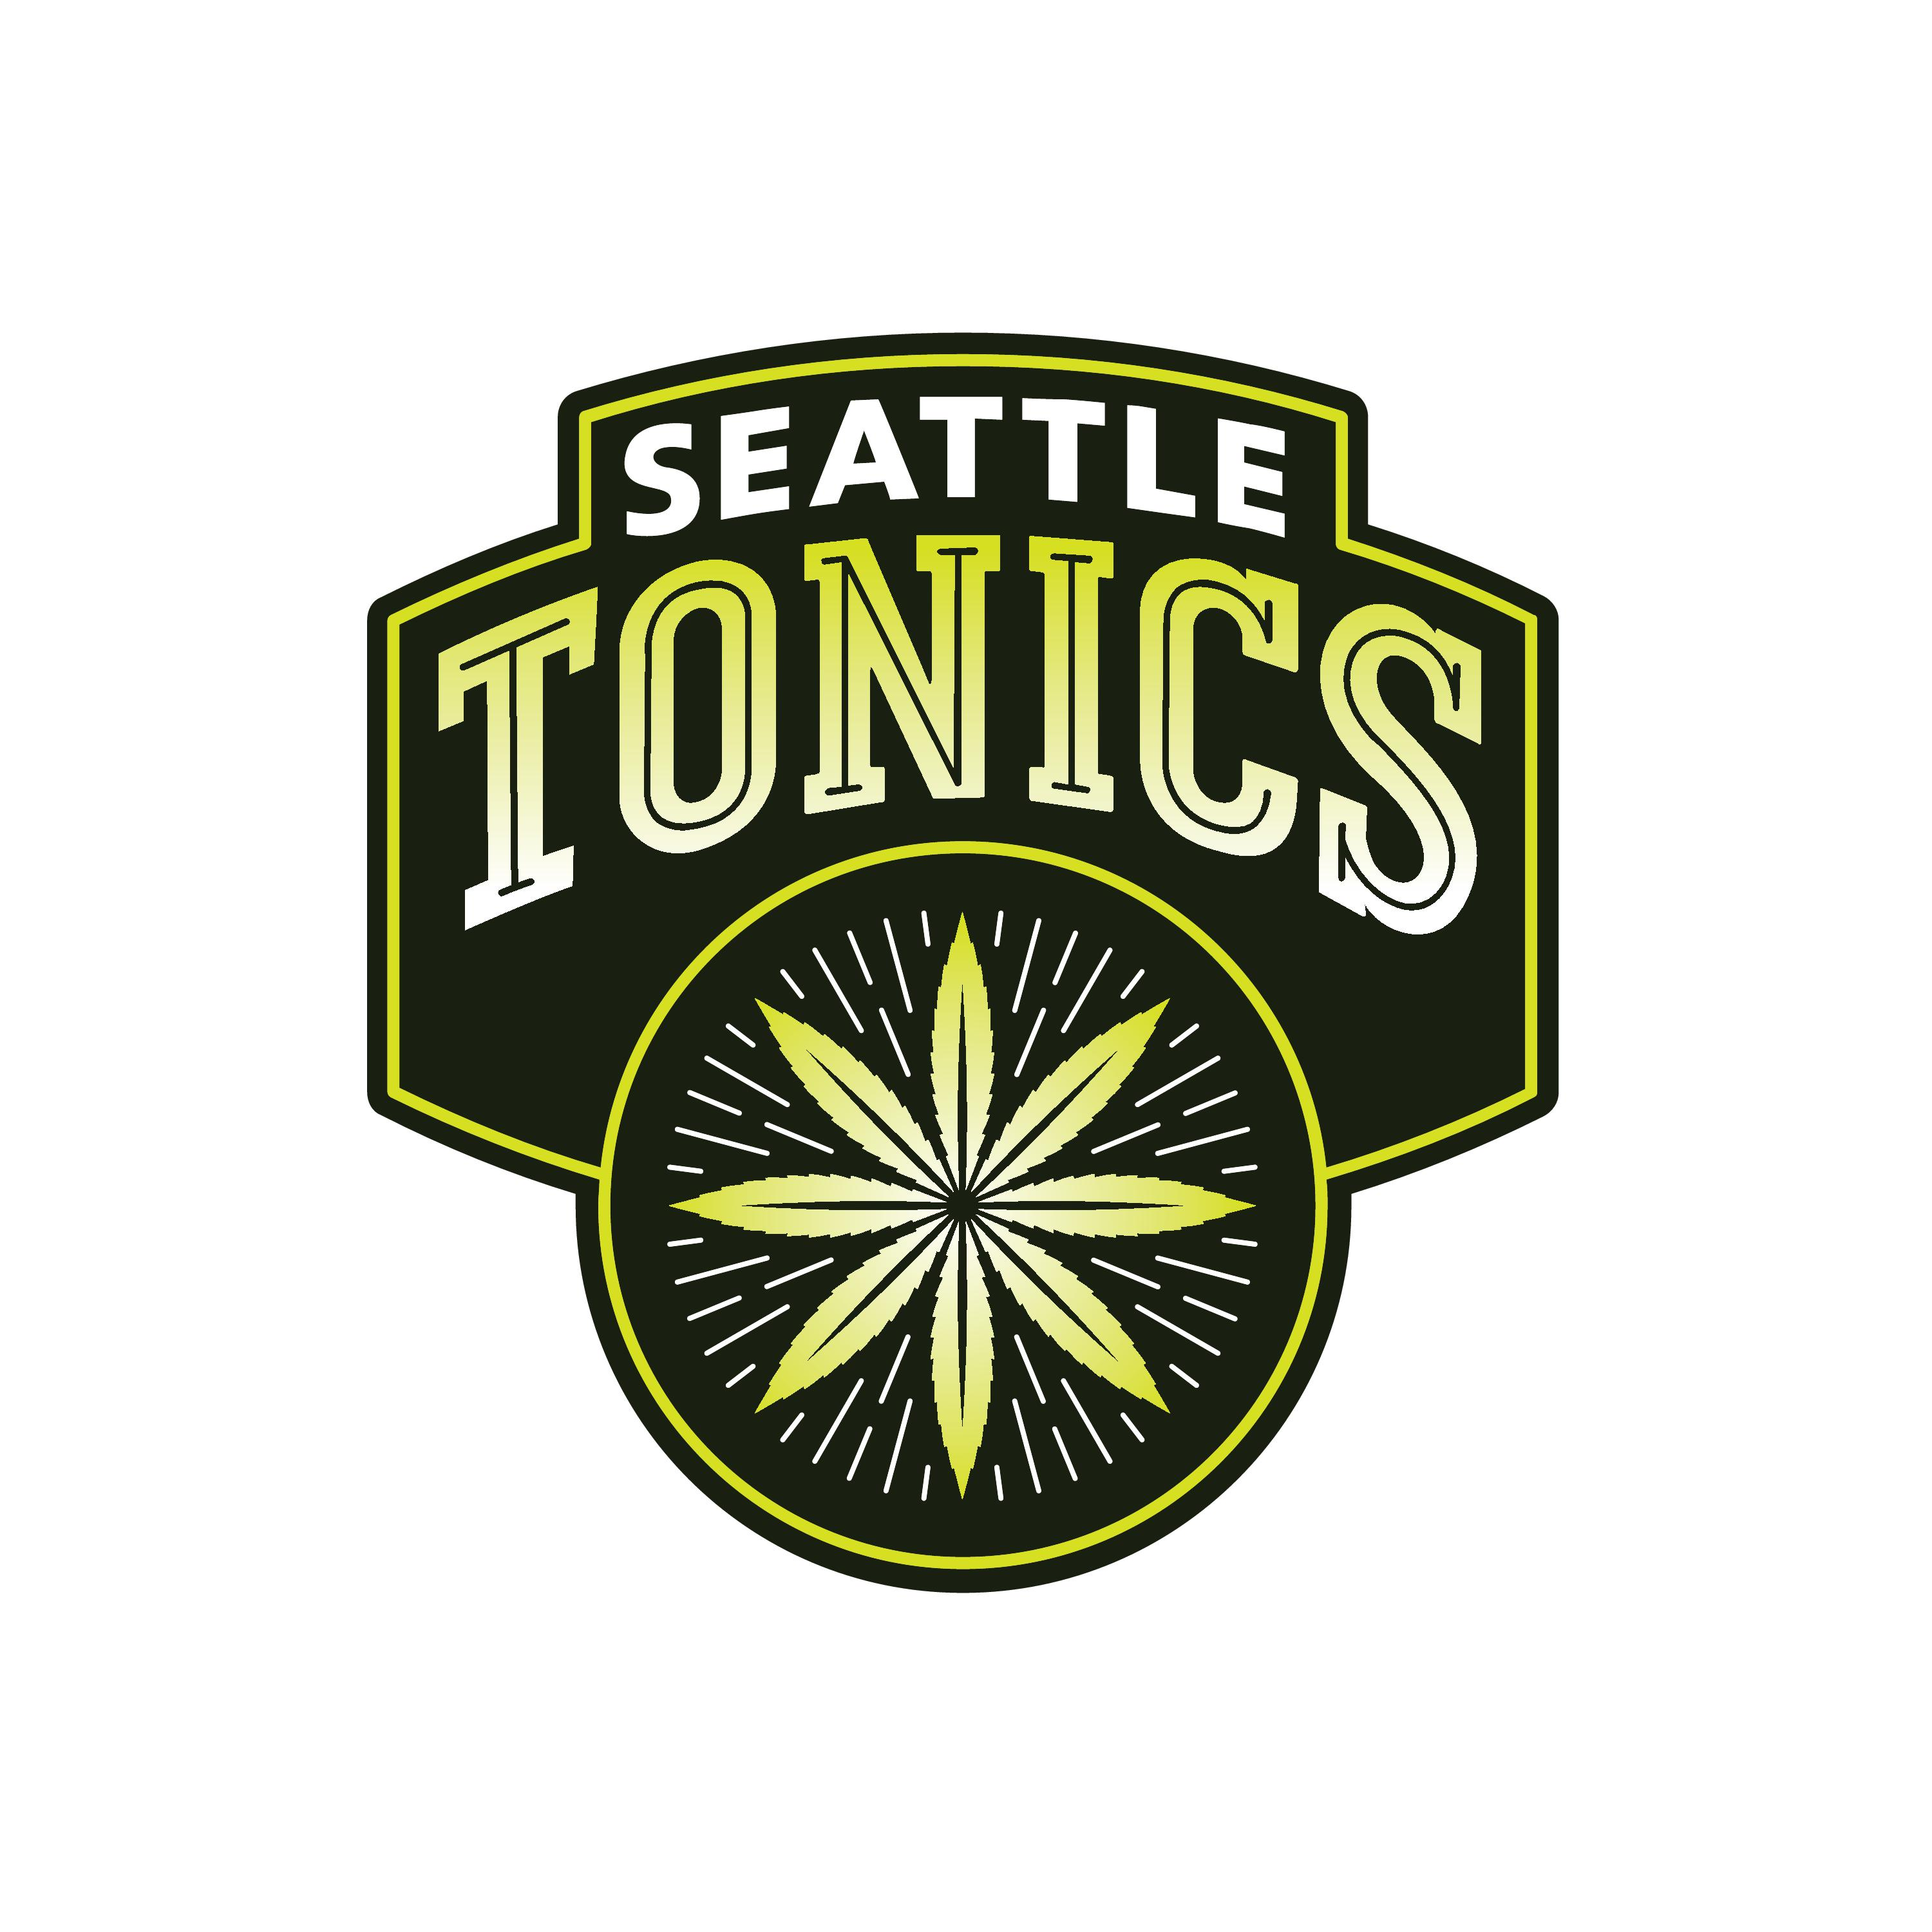 Seattle Tonics